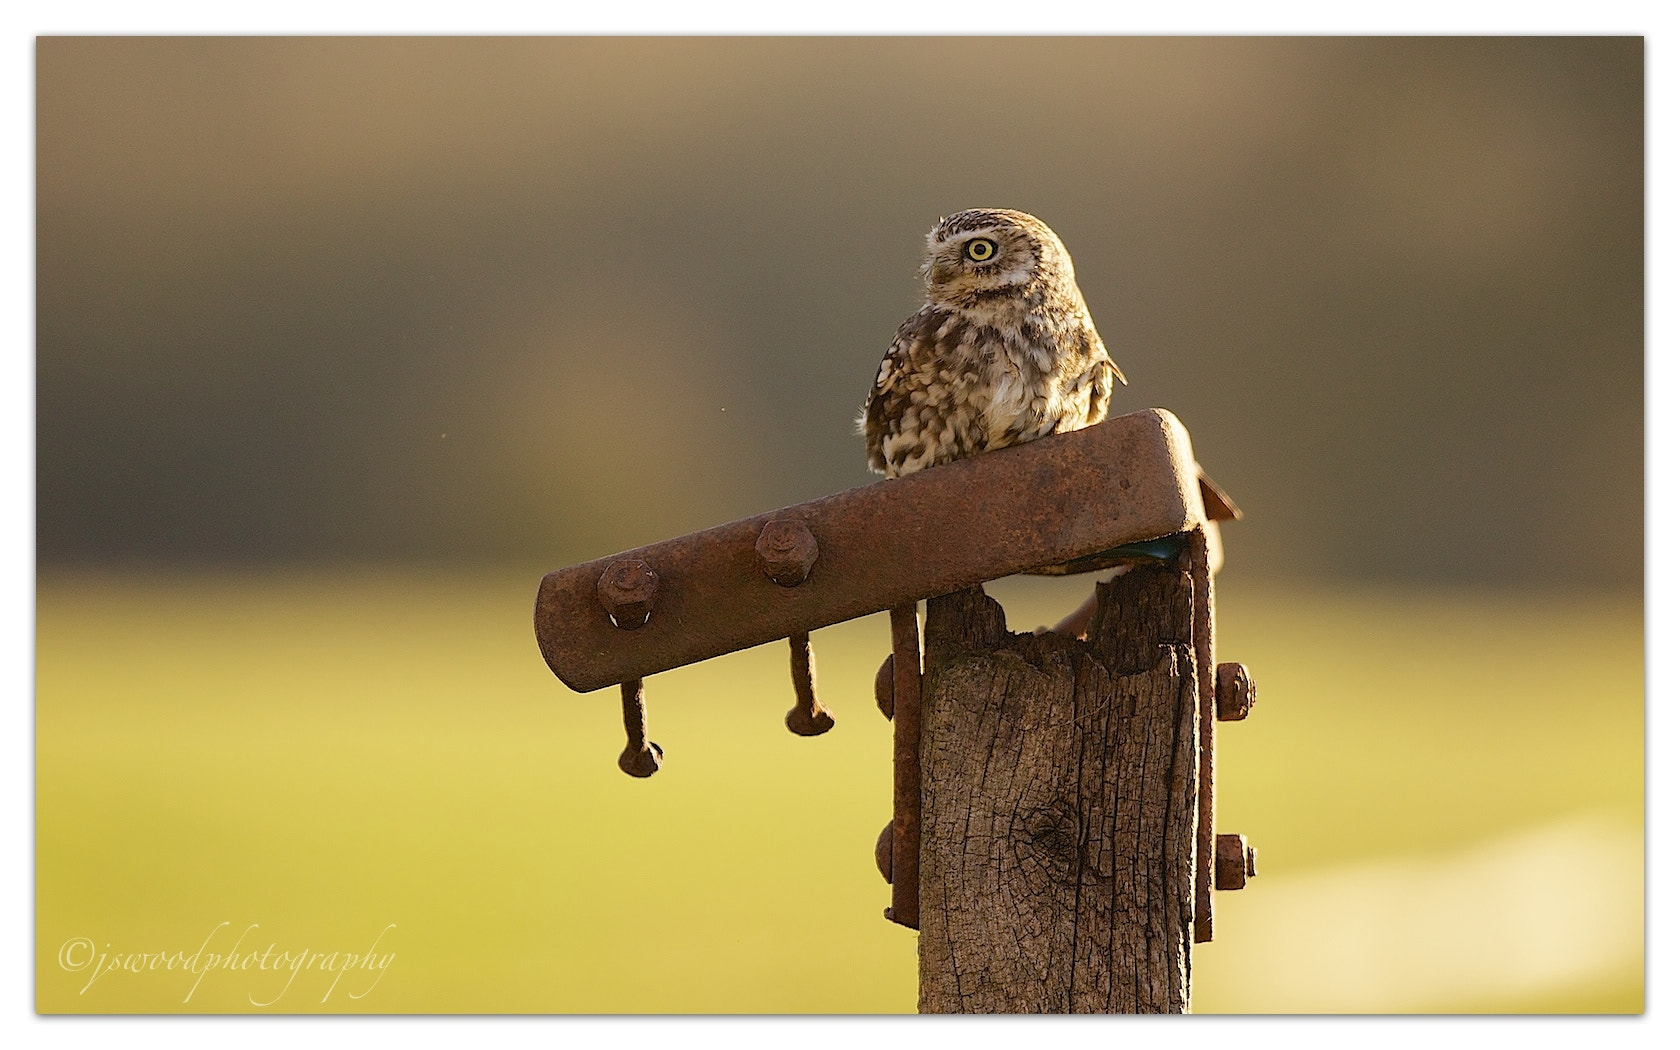 Photograph New Year Little Owl by Jason Wood on 500px